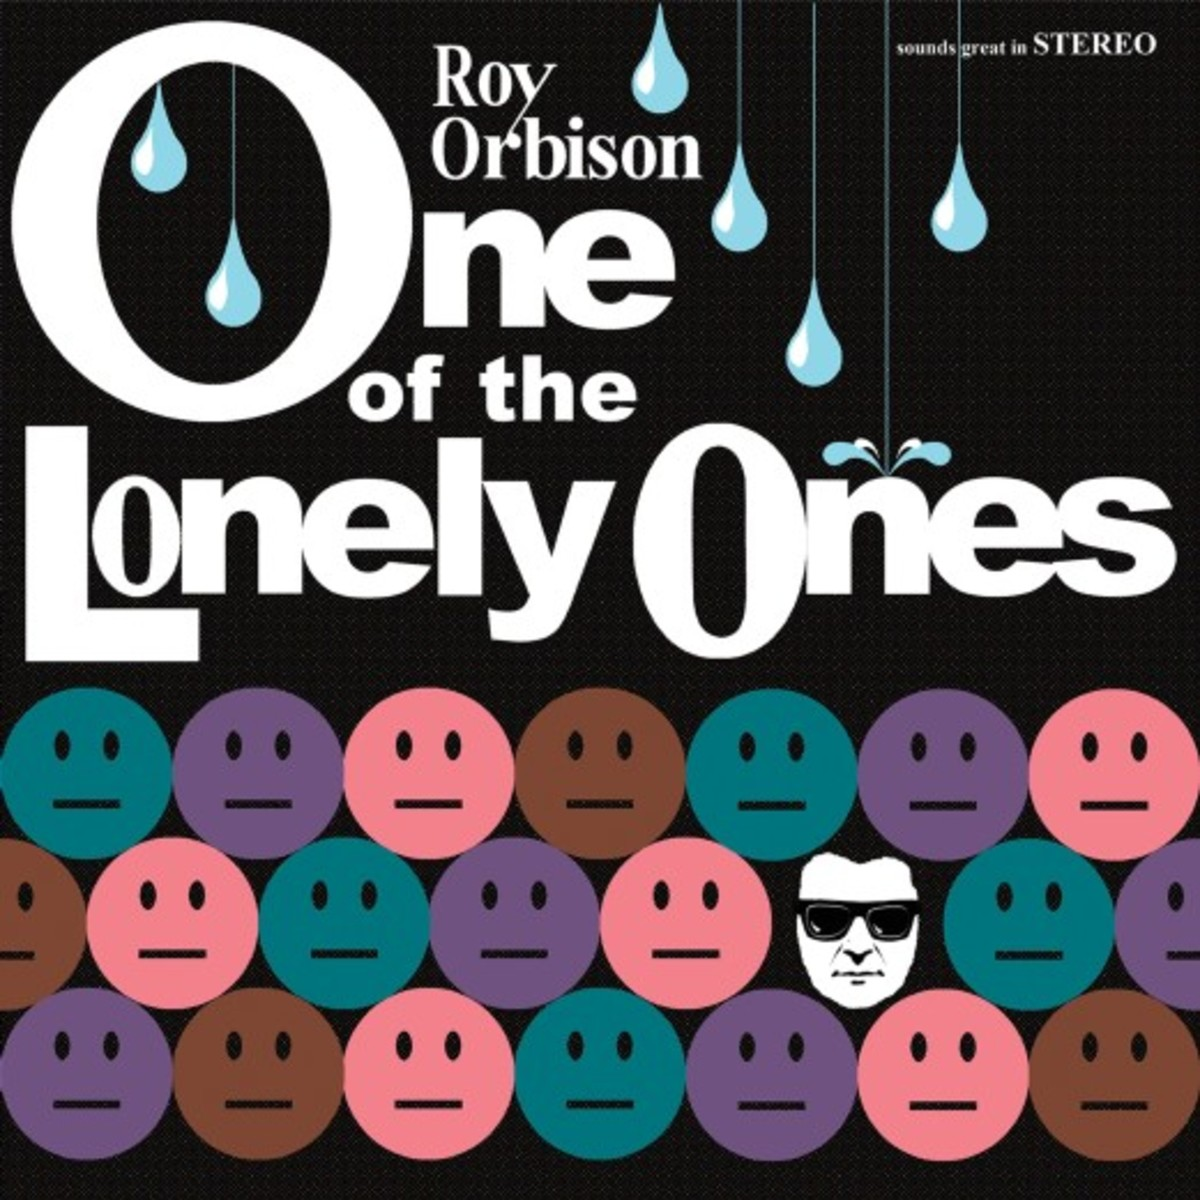 one of the lonely ones(521)